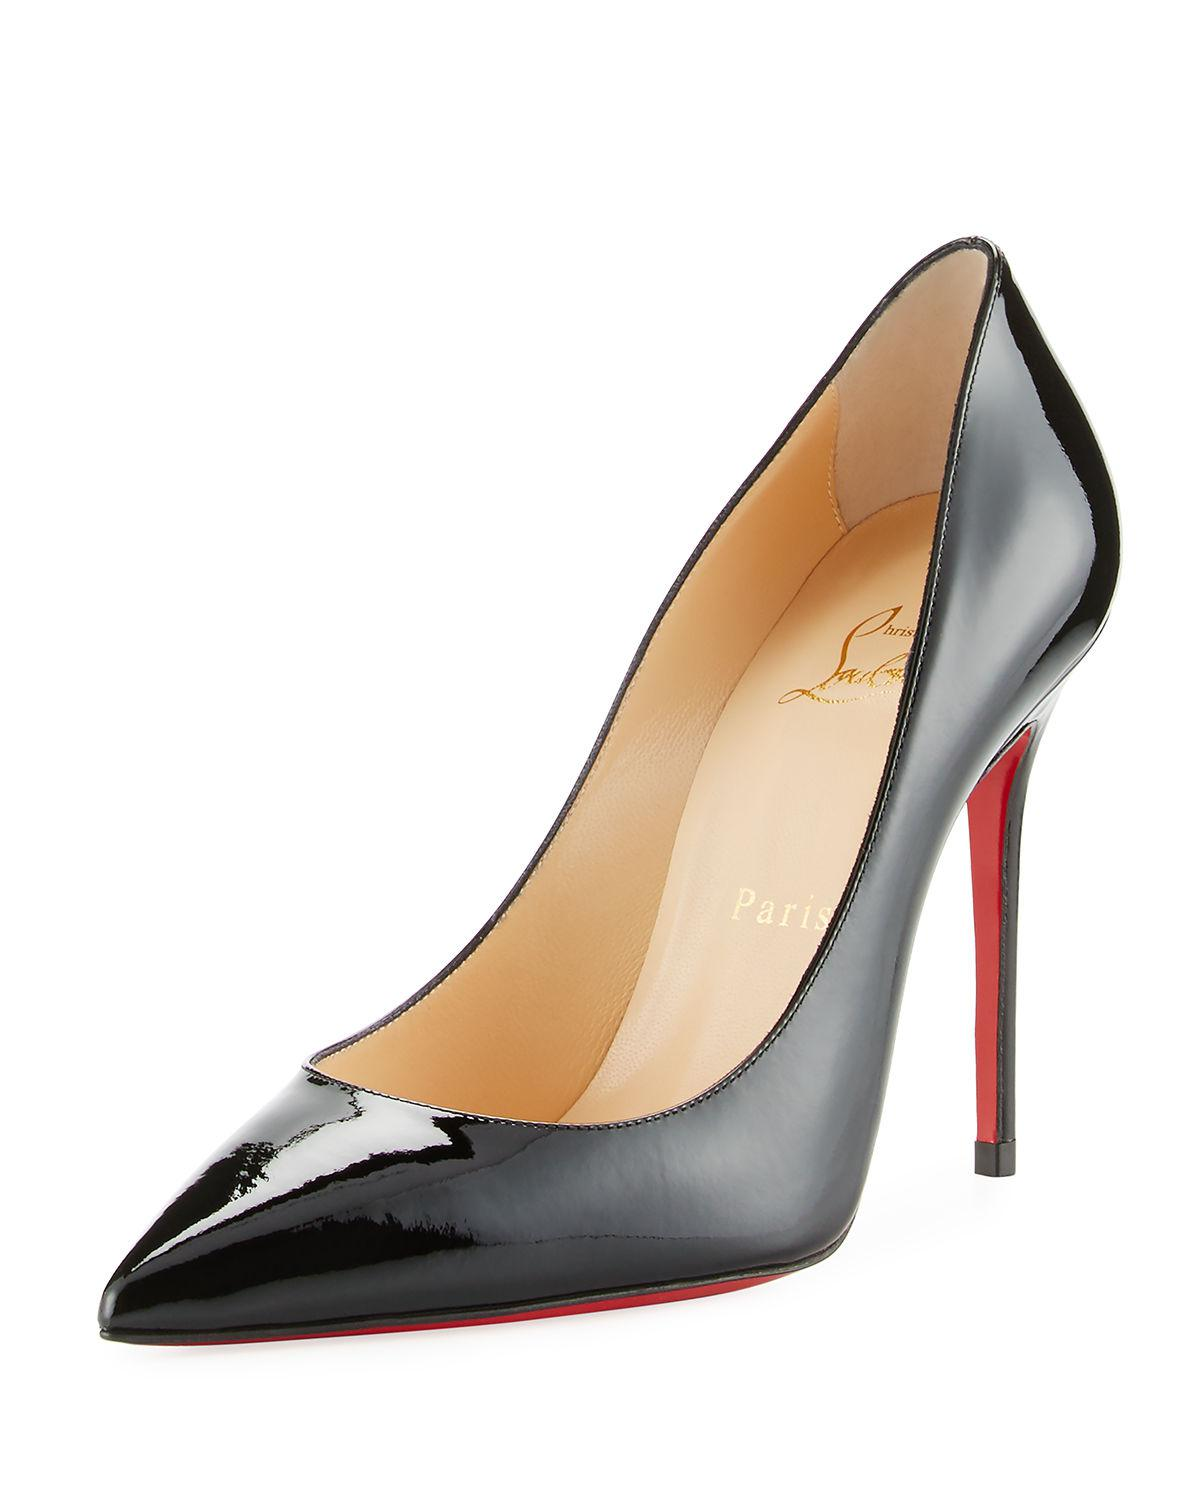 730386cb1f Lyst - Christian Louboutin Decollette Pointed-toe Red Sole Pump in Red